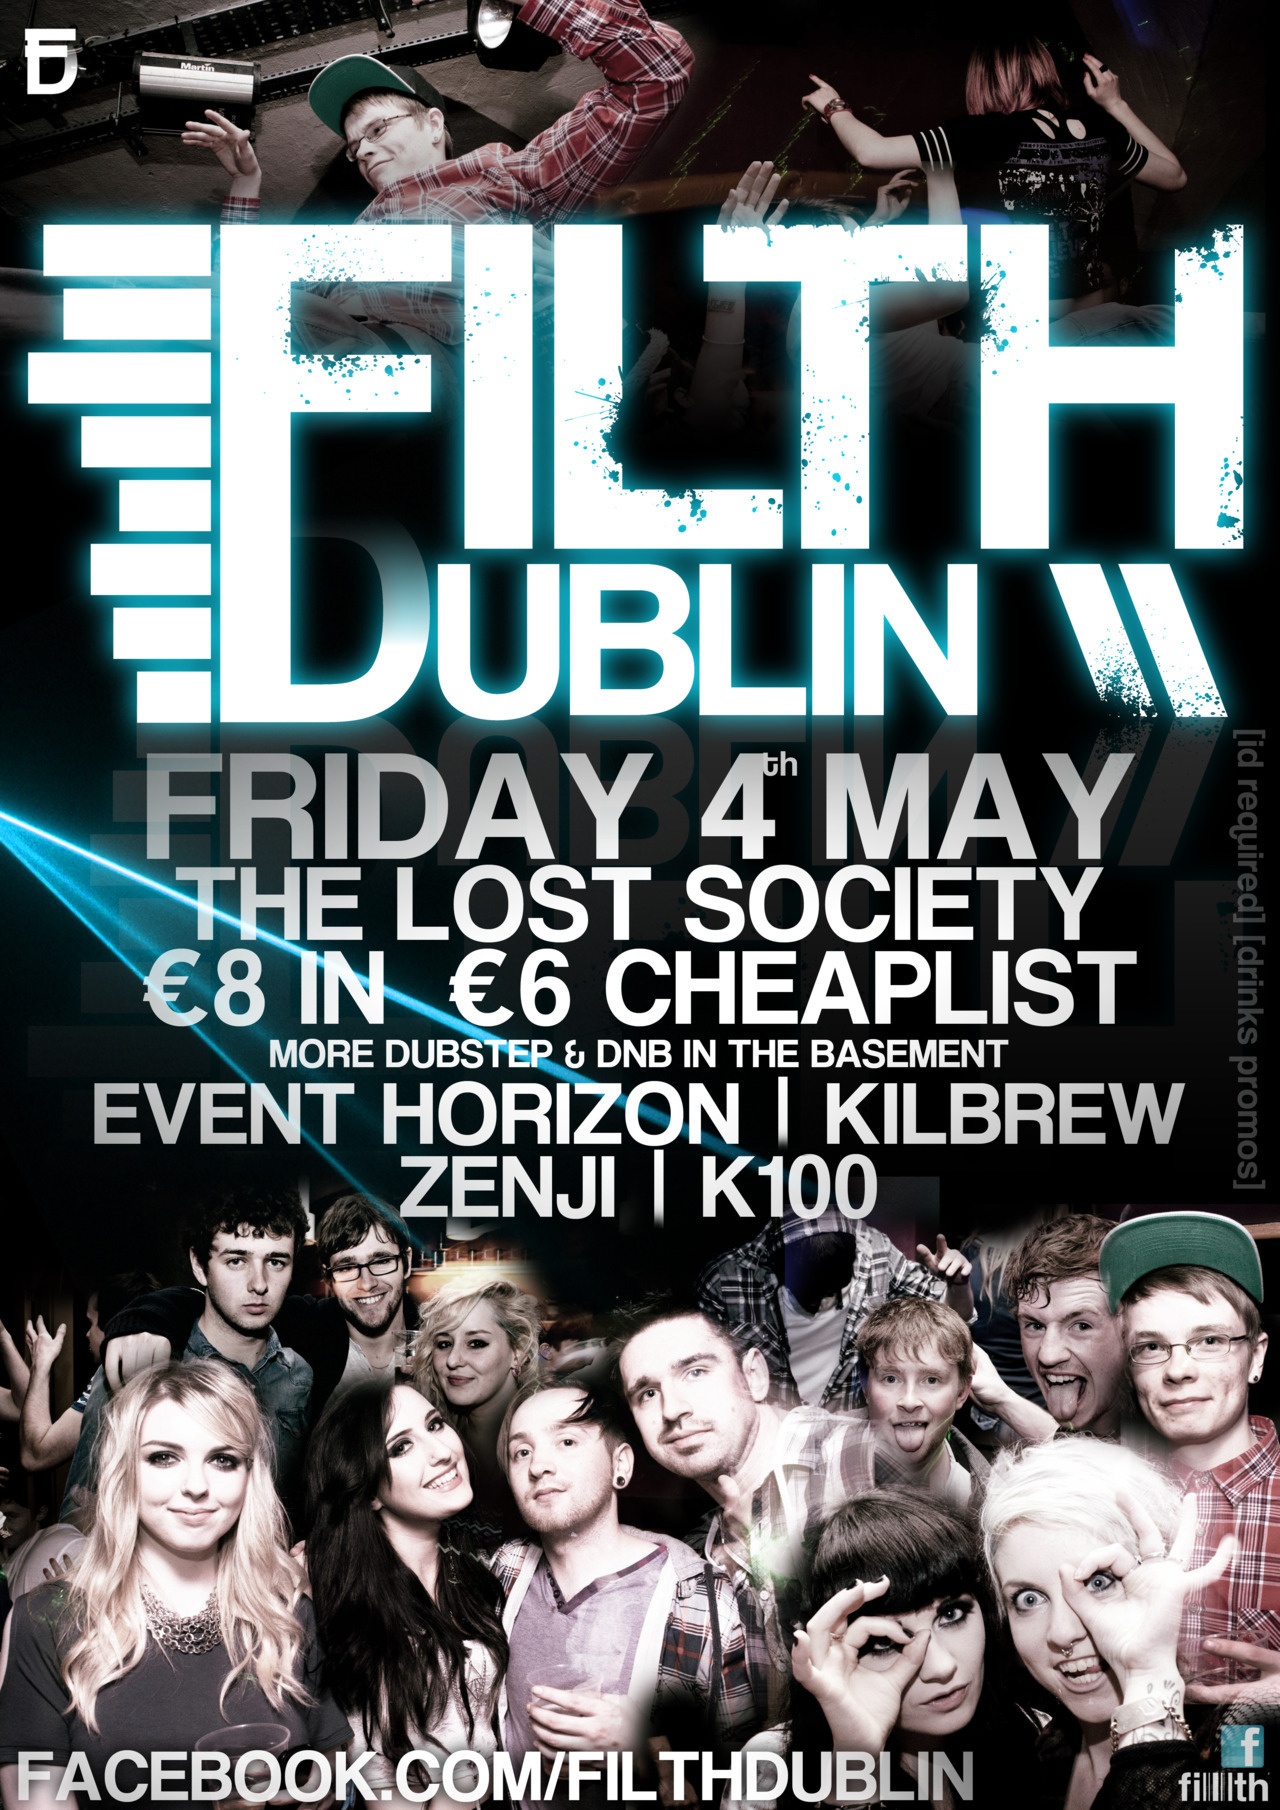 The poster for Filth Dublin on May 4th in the Lost Society. Was just thinking today about how great it's been for us to be involved, with all the artistic opportunities and ridiculously talented people we've met, and that shit is only getting started. Keep an eye out for some subtle changes to the filth graphics after this one, I think the management have a new direction in mind :) In the mean time check out the event page for cheaplist and the Filth Dublin Facebook for original tunes and mixes by the resident DJs, including our good friend K100 who just put out a new track (free for download too). Dillon